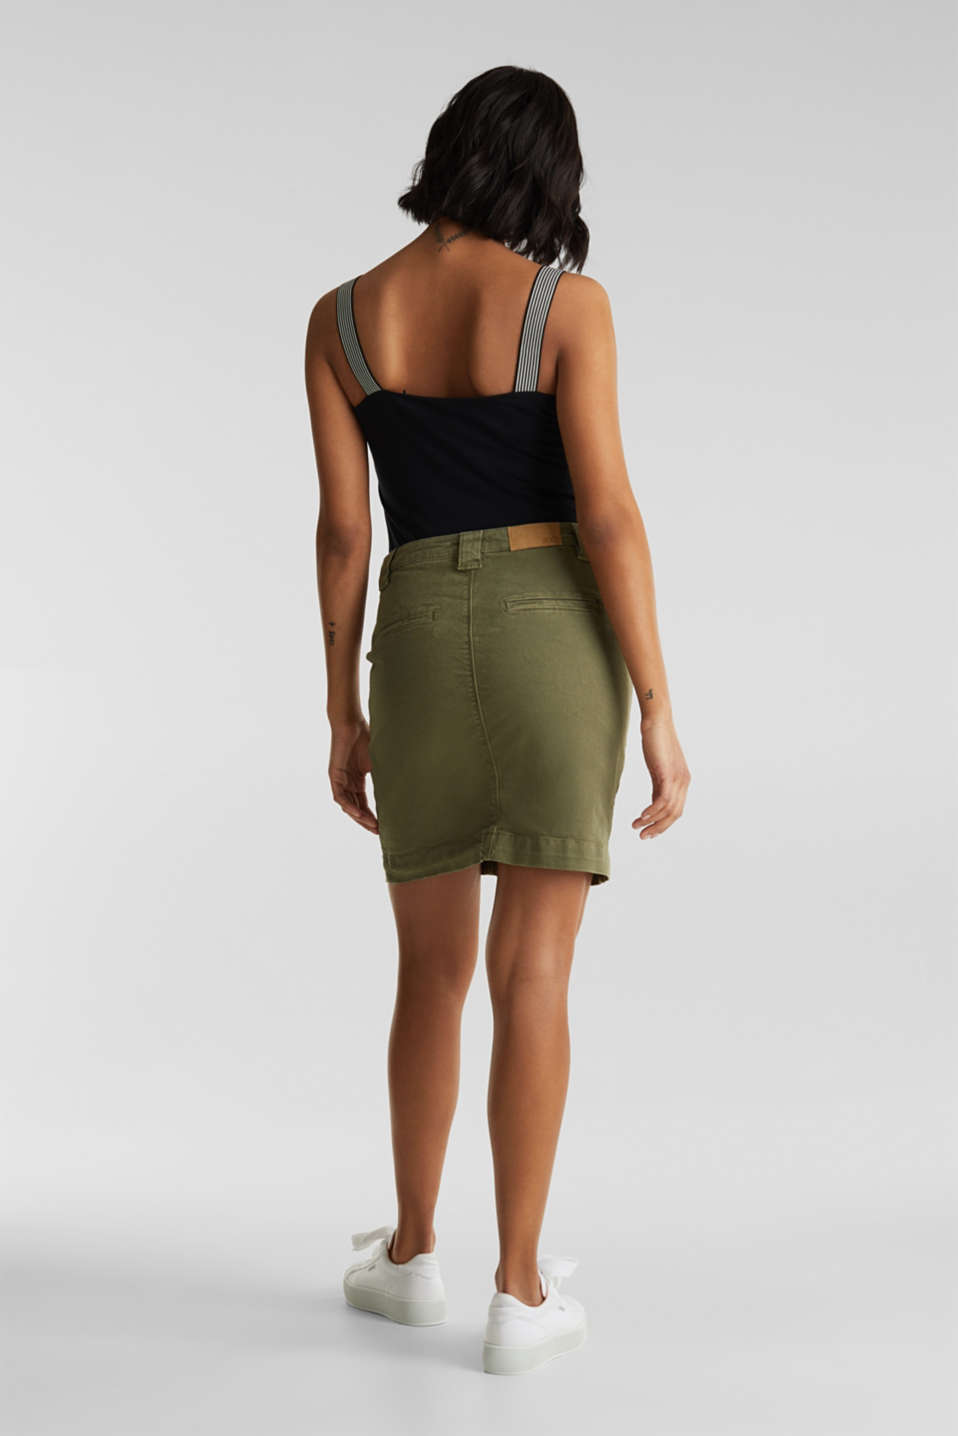 Denim skirt with pockets, KHAKI GREEN, detail image number 3